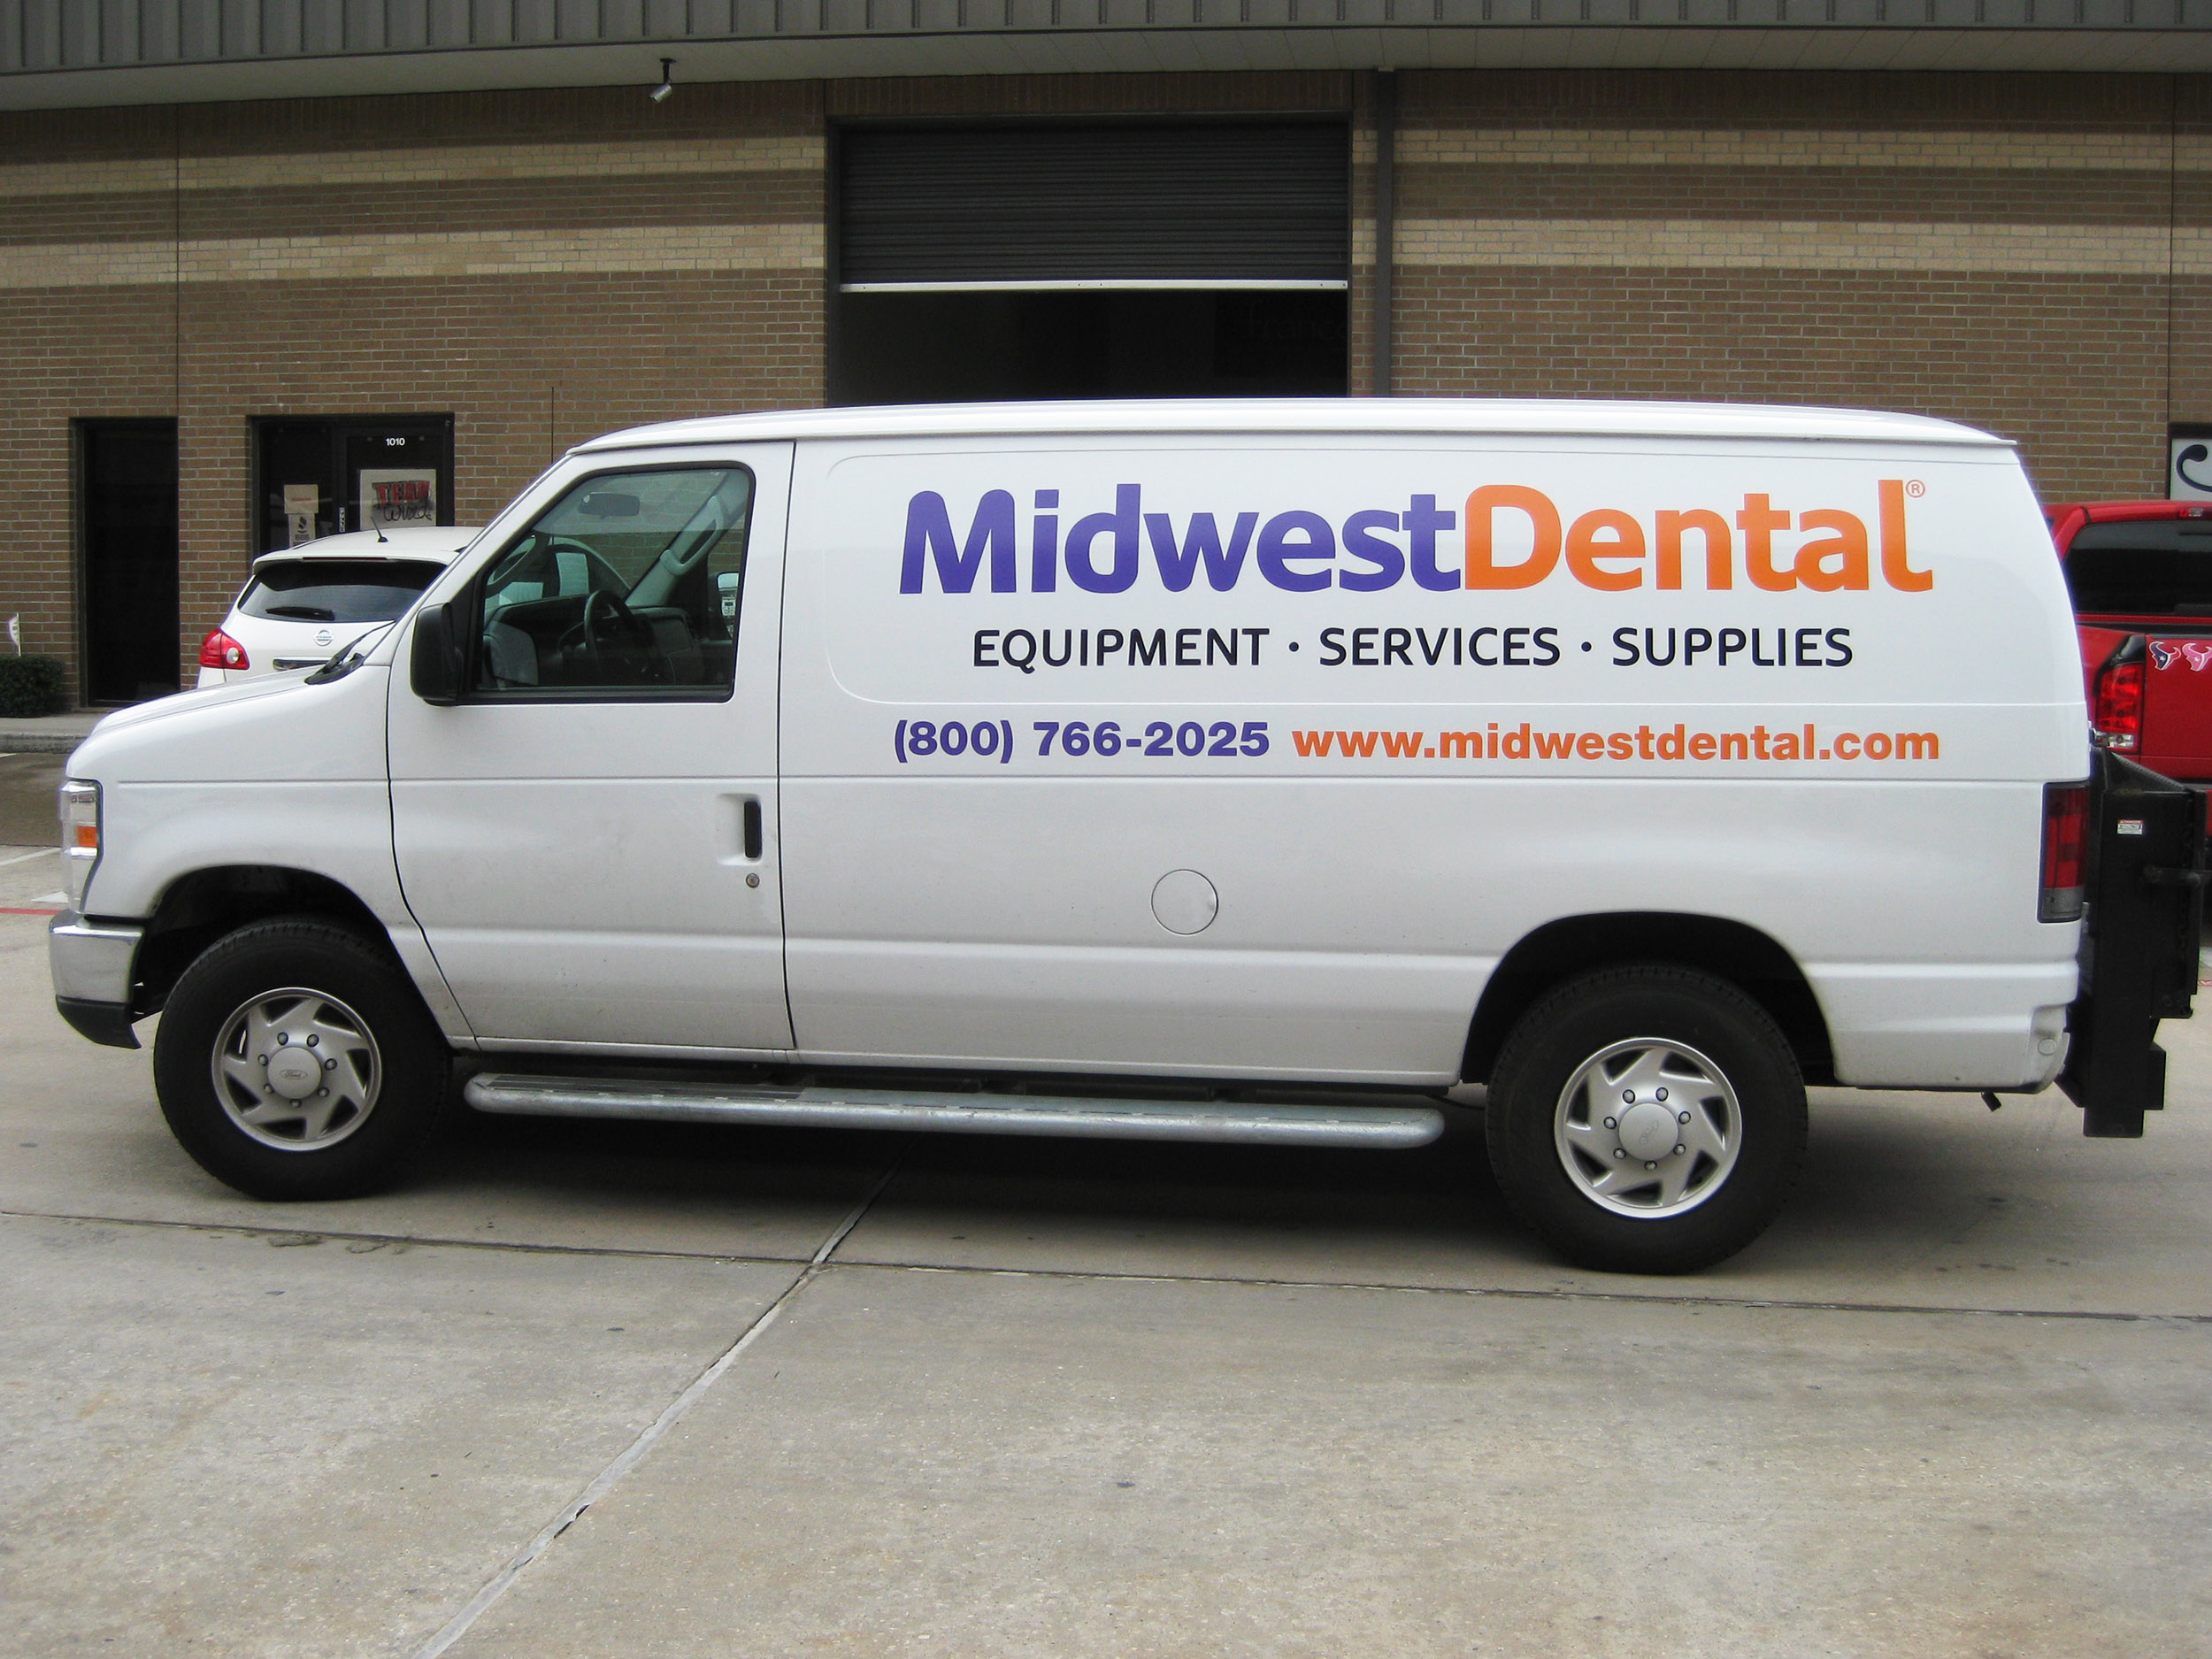 MidwestDental_Van_Decals_web.jpg